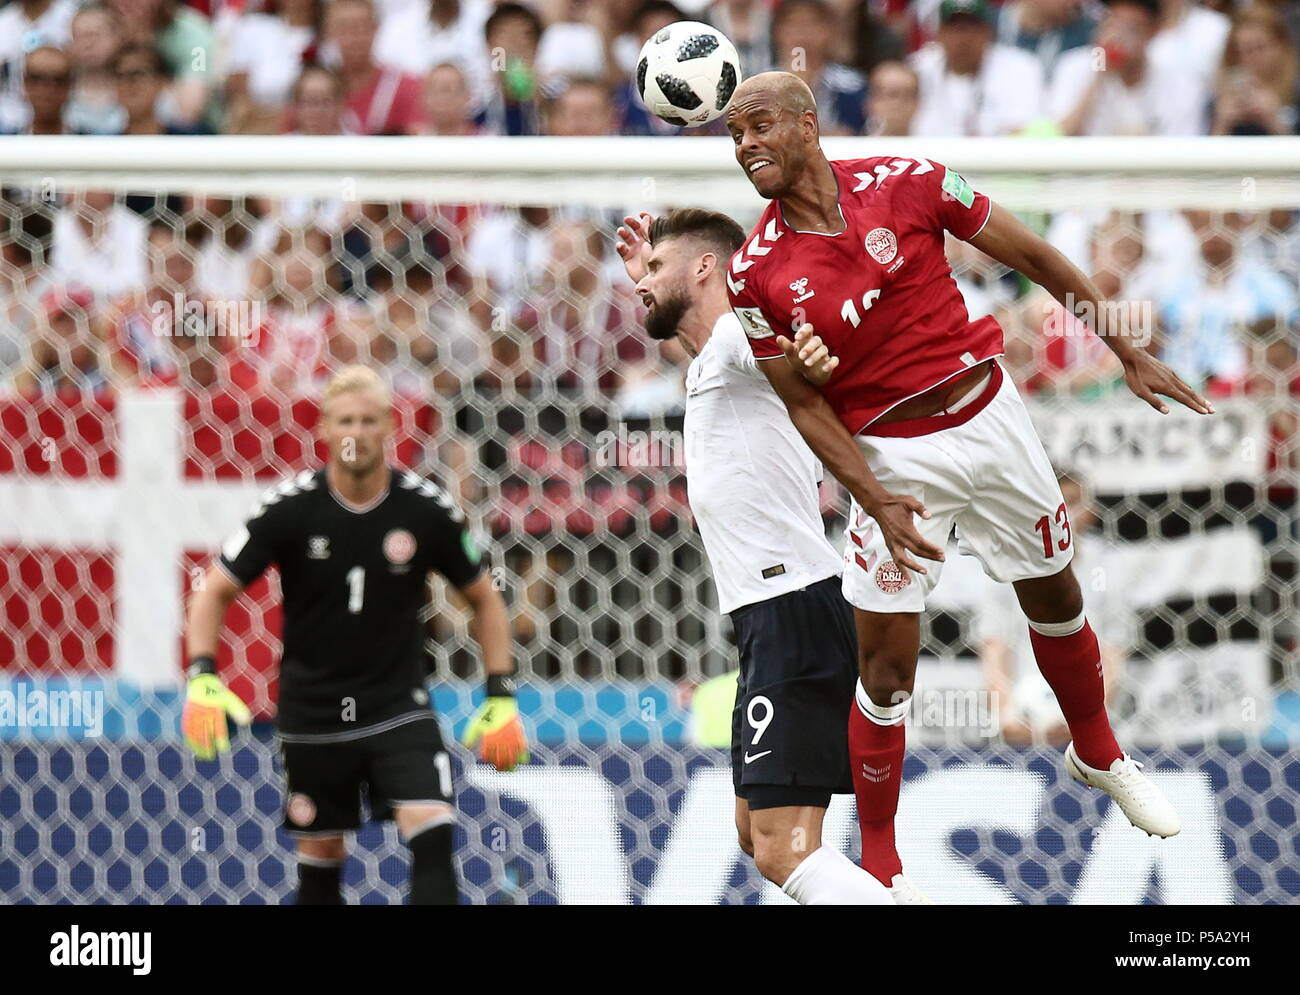 Moscow, Russia. 26th June, 2018. MOSCOW, RUSSIA - JUNE 26, 2018: Denmark's Mathias Jorgensen and France's Olivier Giroud (R-L) in their 2018 FIFA World Cup Group C Round 3 match at Luzhniki Stadium. Valery Sharifulin/TASS Credit: ITAR-TASS News Agency/Alamy Live News - Stock Image